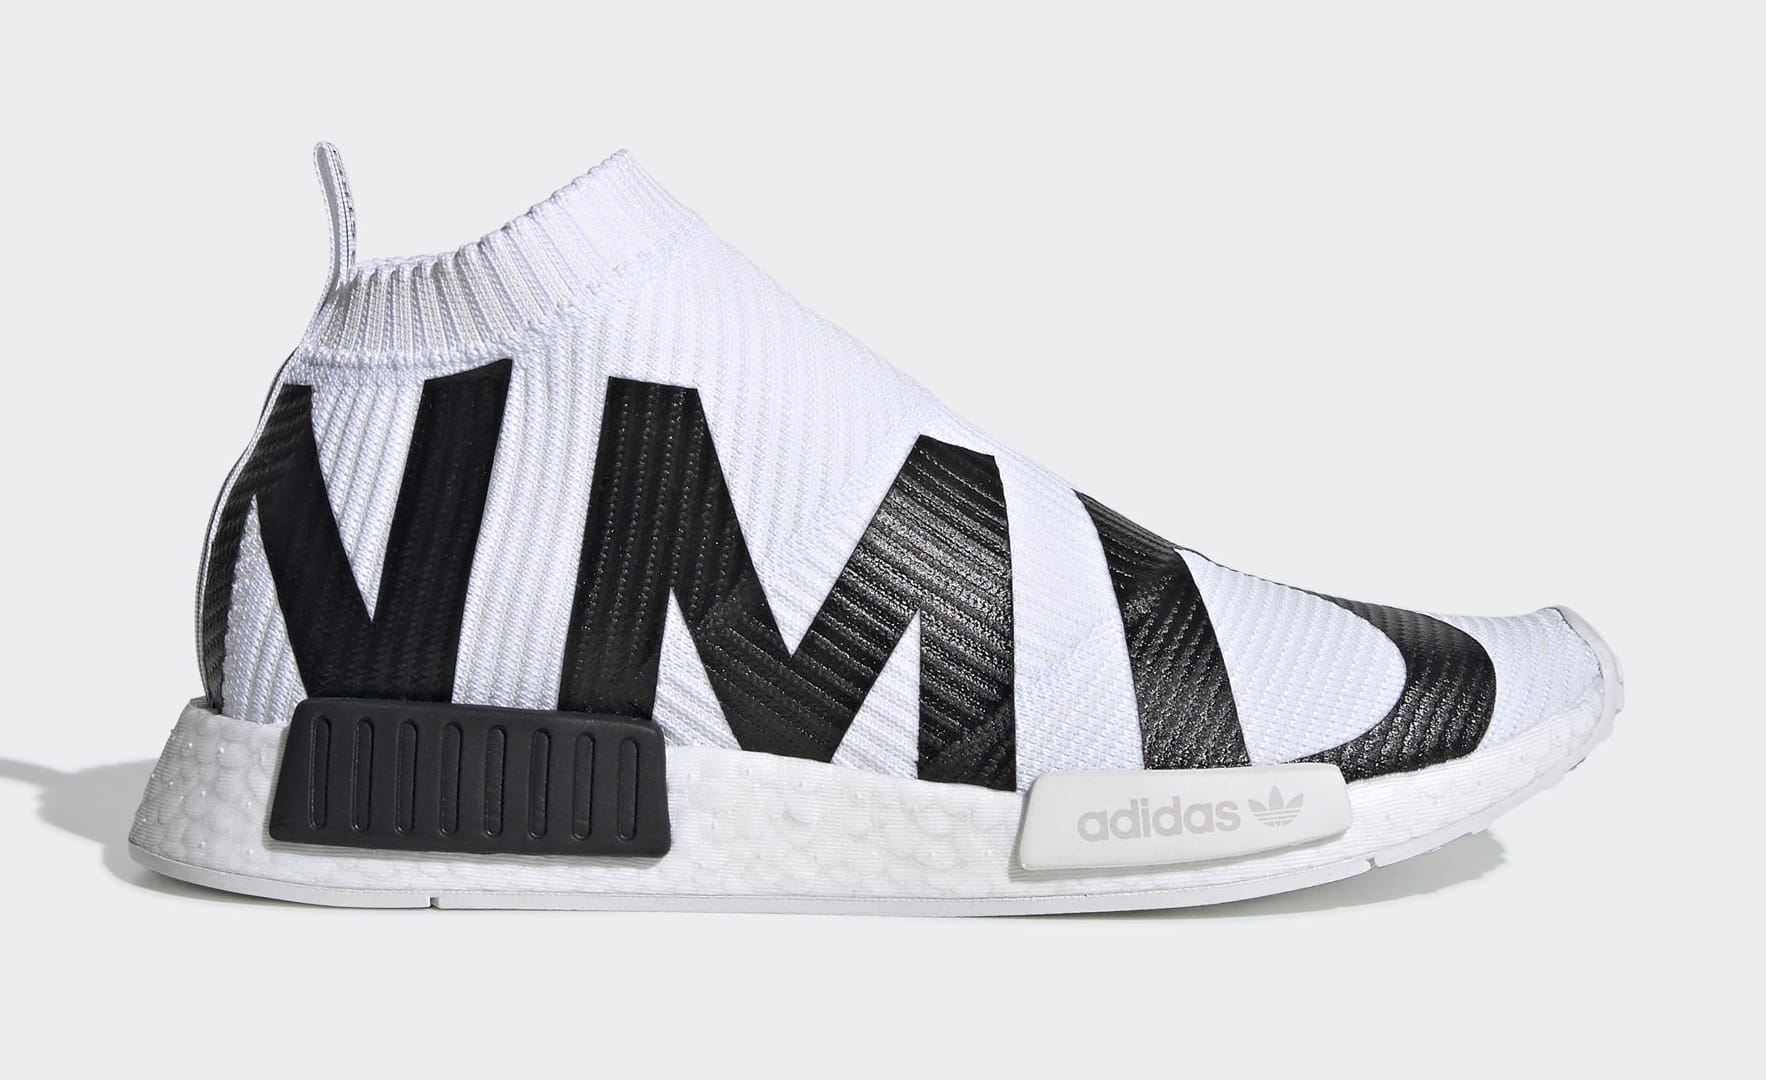 Adidas NMD_CS1 PK 'Cloud White' EG7538 Lateral